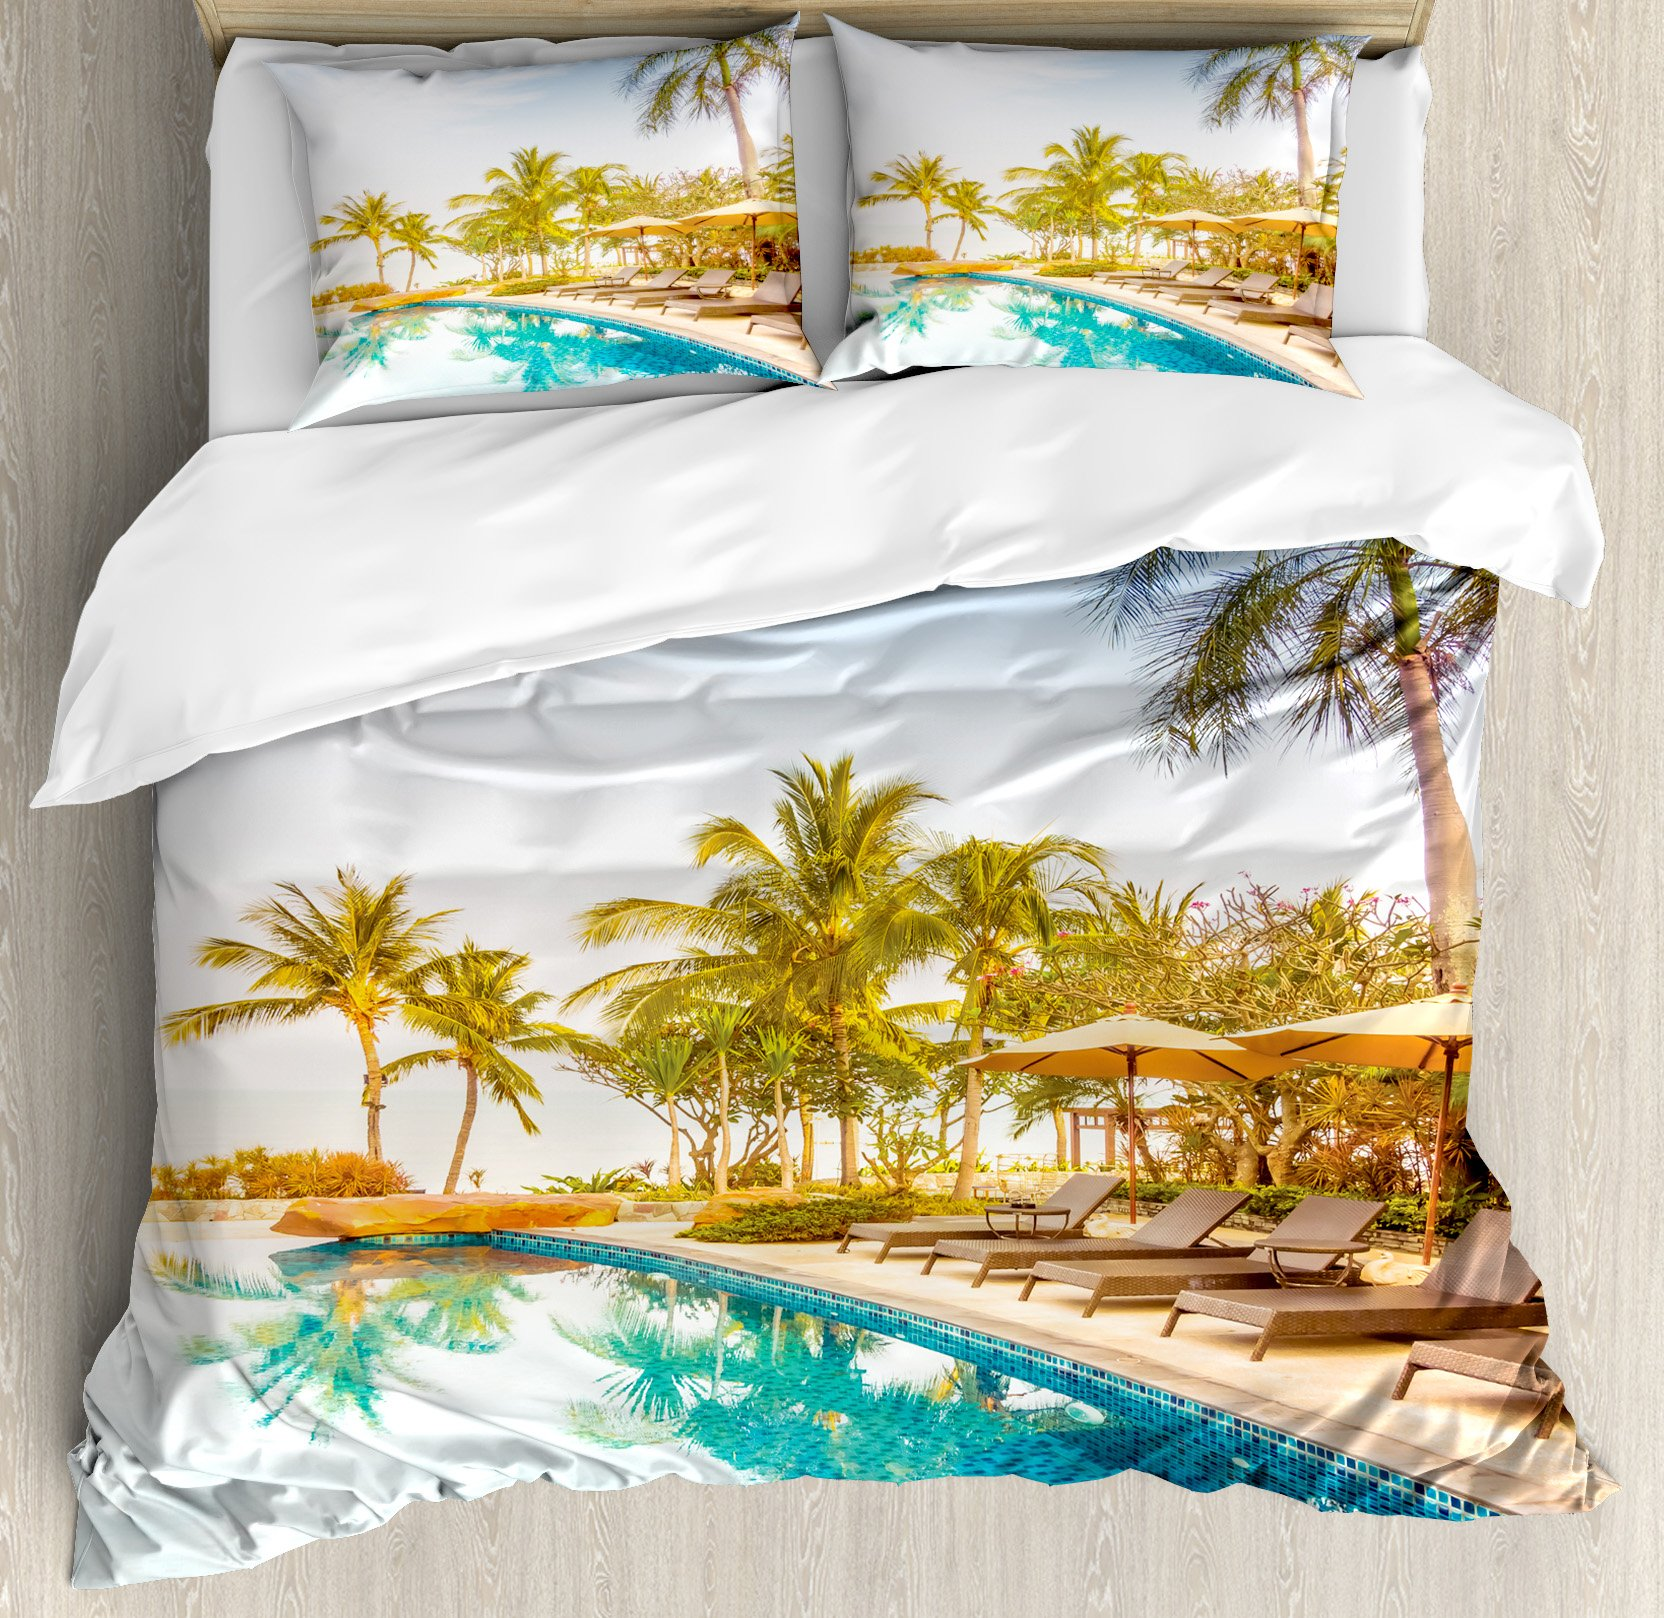 House Decor Duvet Cover Set by Ambesonne, Aerial View of A Pool in A Health Resort Spa Hotel with Exotic Elements Sports Modern Photo, 3 Piece Bedding Set with Pillow Shams, King Size, Multi